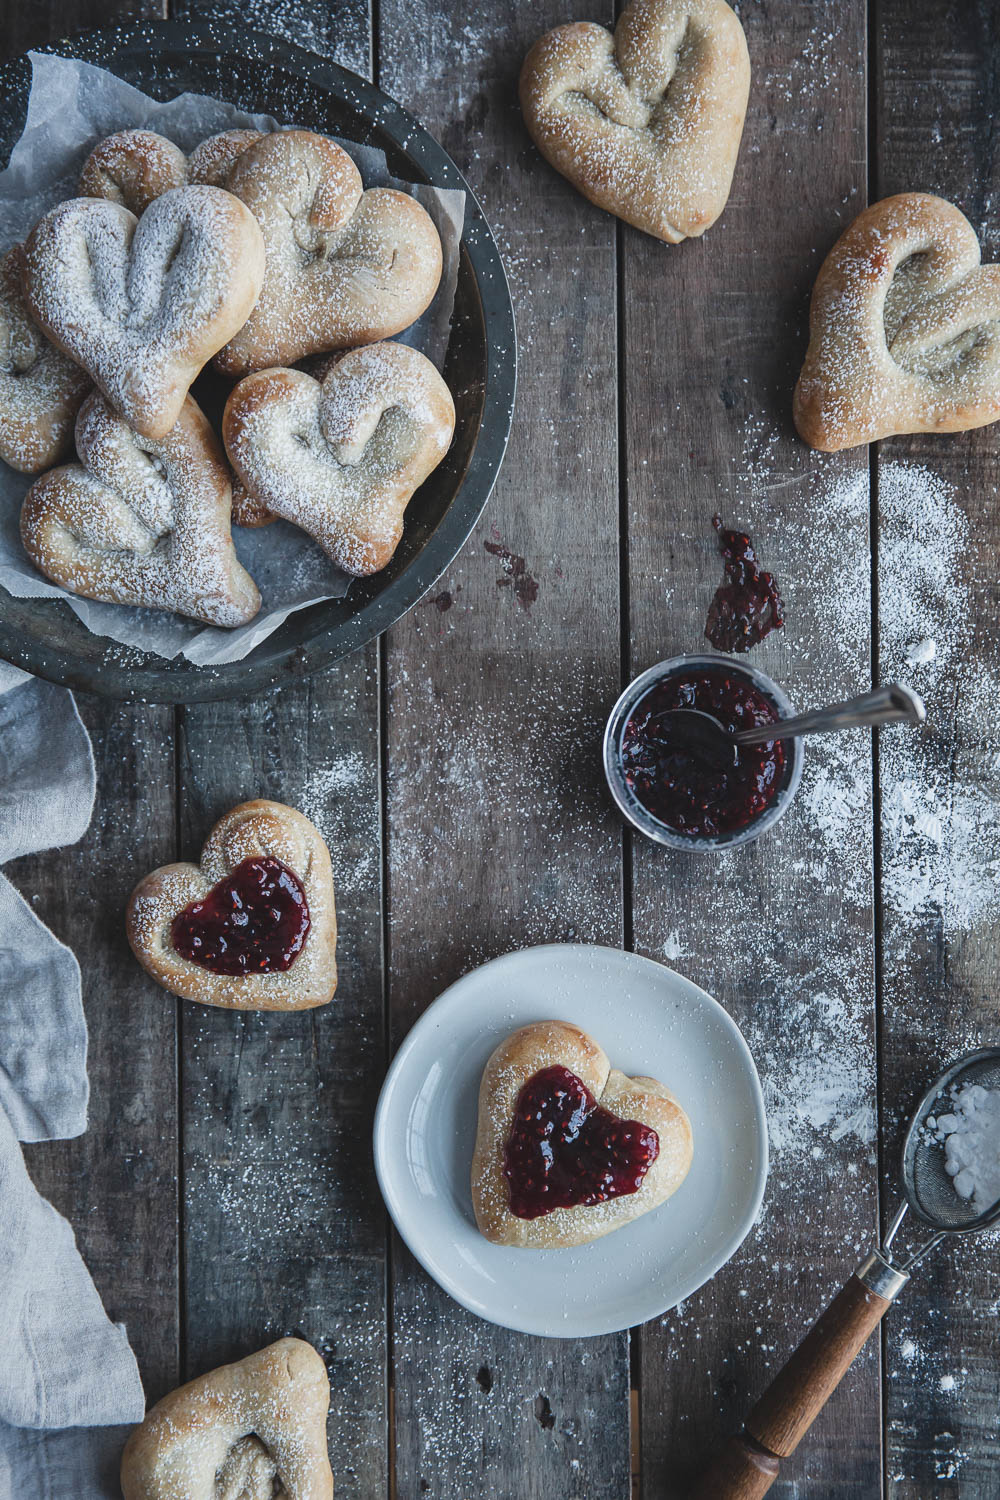 Cardamom hearts with raspberry jam